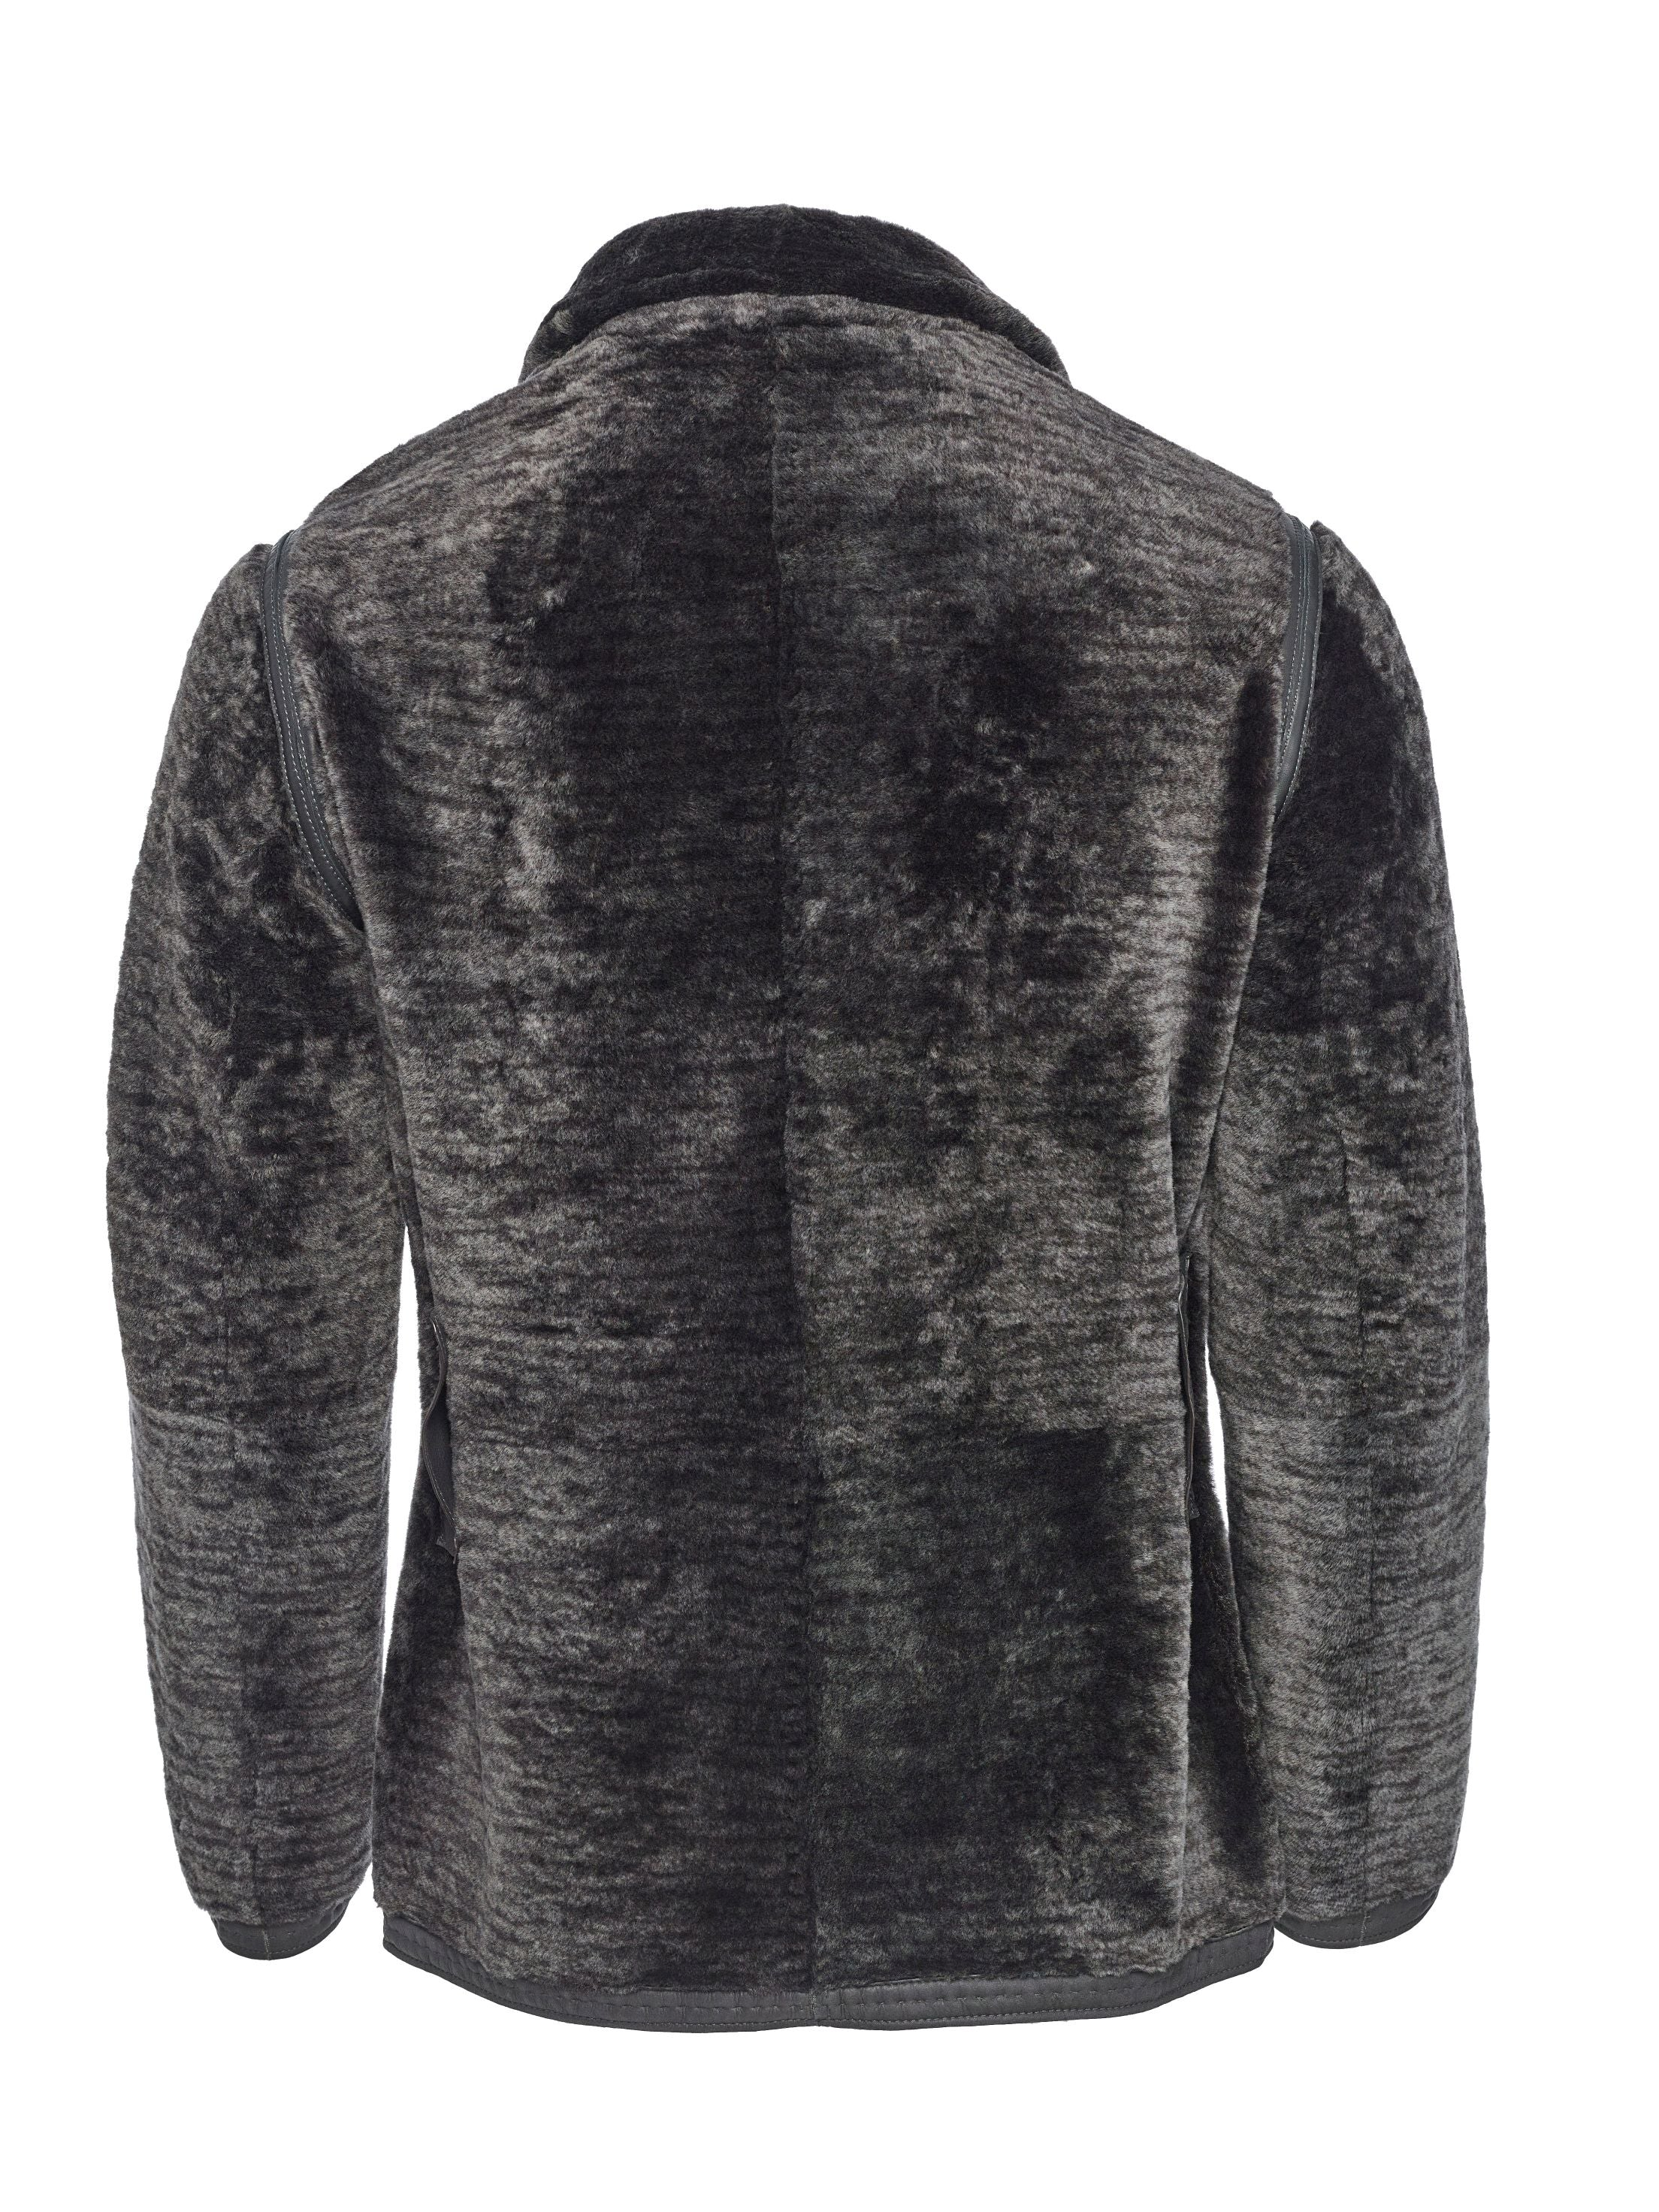 At first touch one immediately discoveres the opulence and ultra-light weight of Spanish Merino fleece